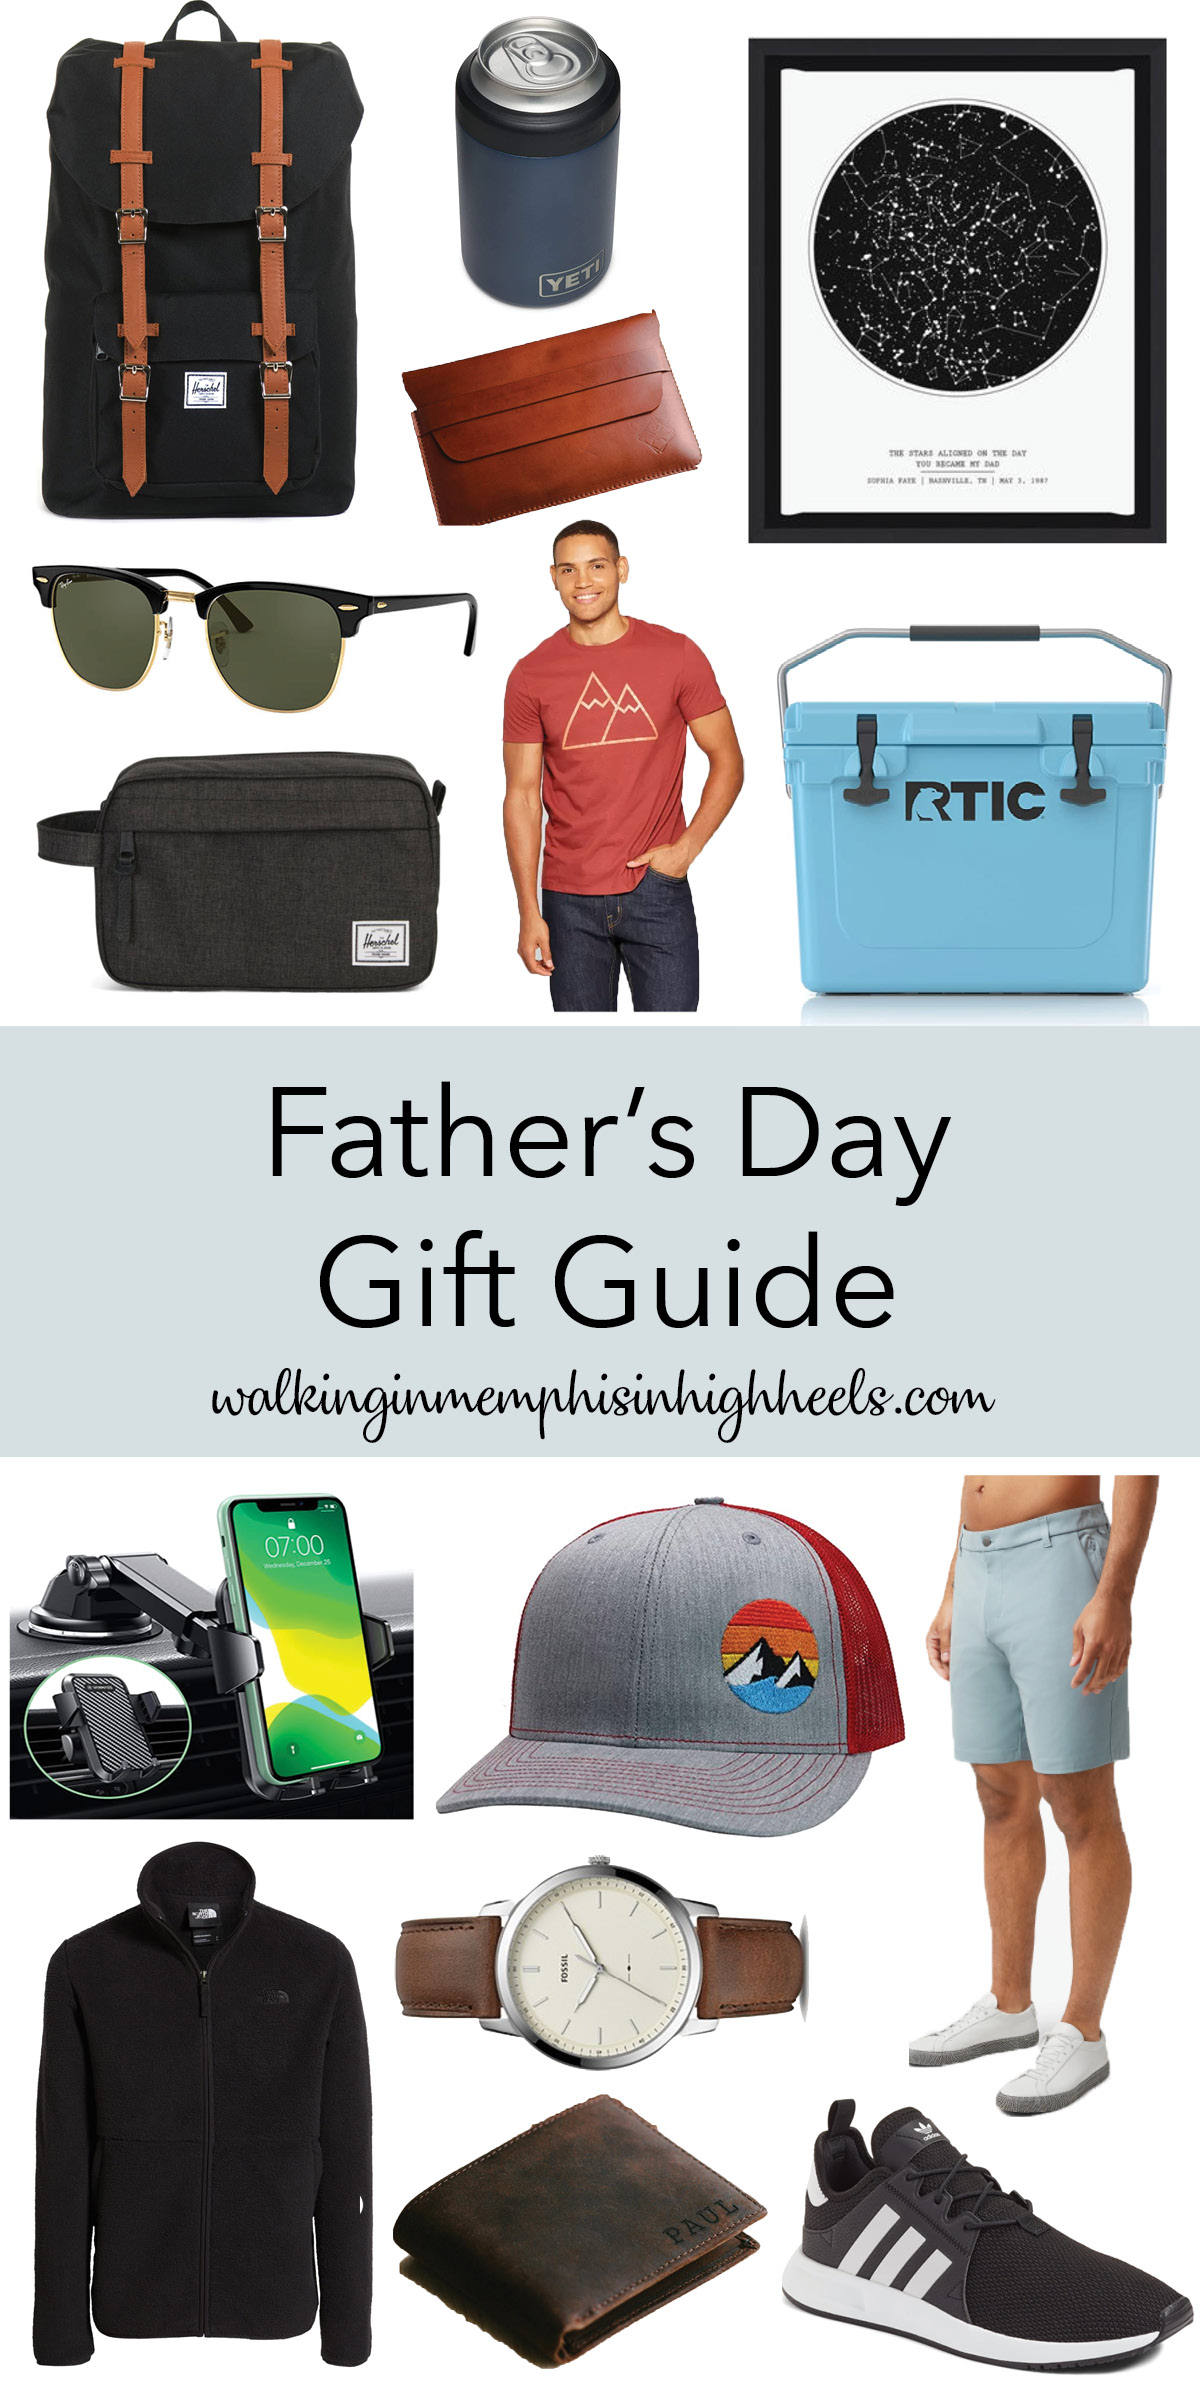 The Ultimate Fathers Day Gift Guide with a Gift Ideas for Every Dad featured by top Memphis life and style blogger, Walking in Memphis in High Heels.